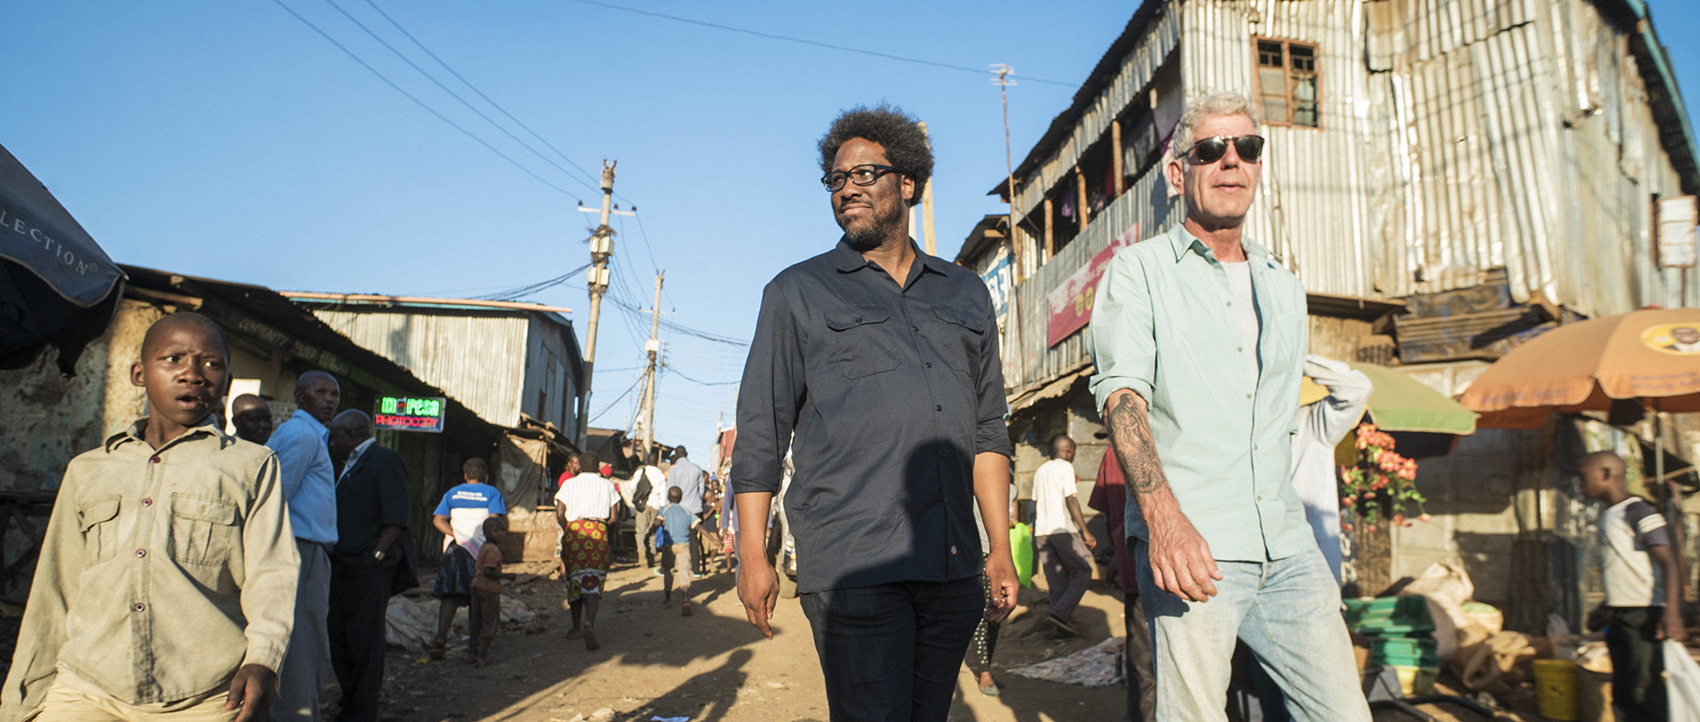 """Anthony Bourdain (right) with W. Kamau Bell in the Kibera slums in Nairobi, Kenya, while filming the first episode of the final season of CNN's """"Parts Unknown."""" (Courtesy David Scott Holloway via CNN)"""